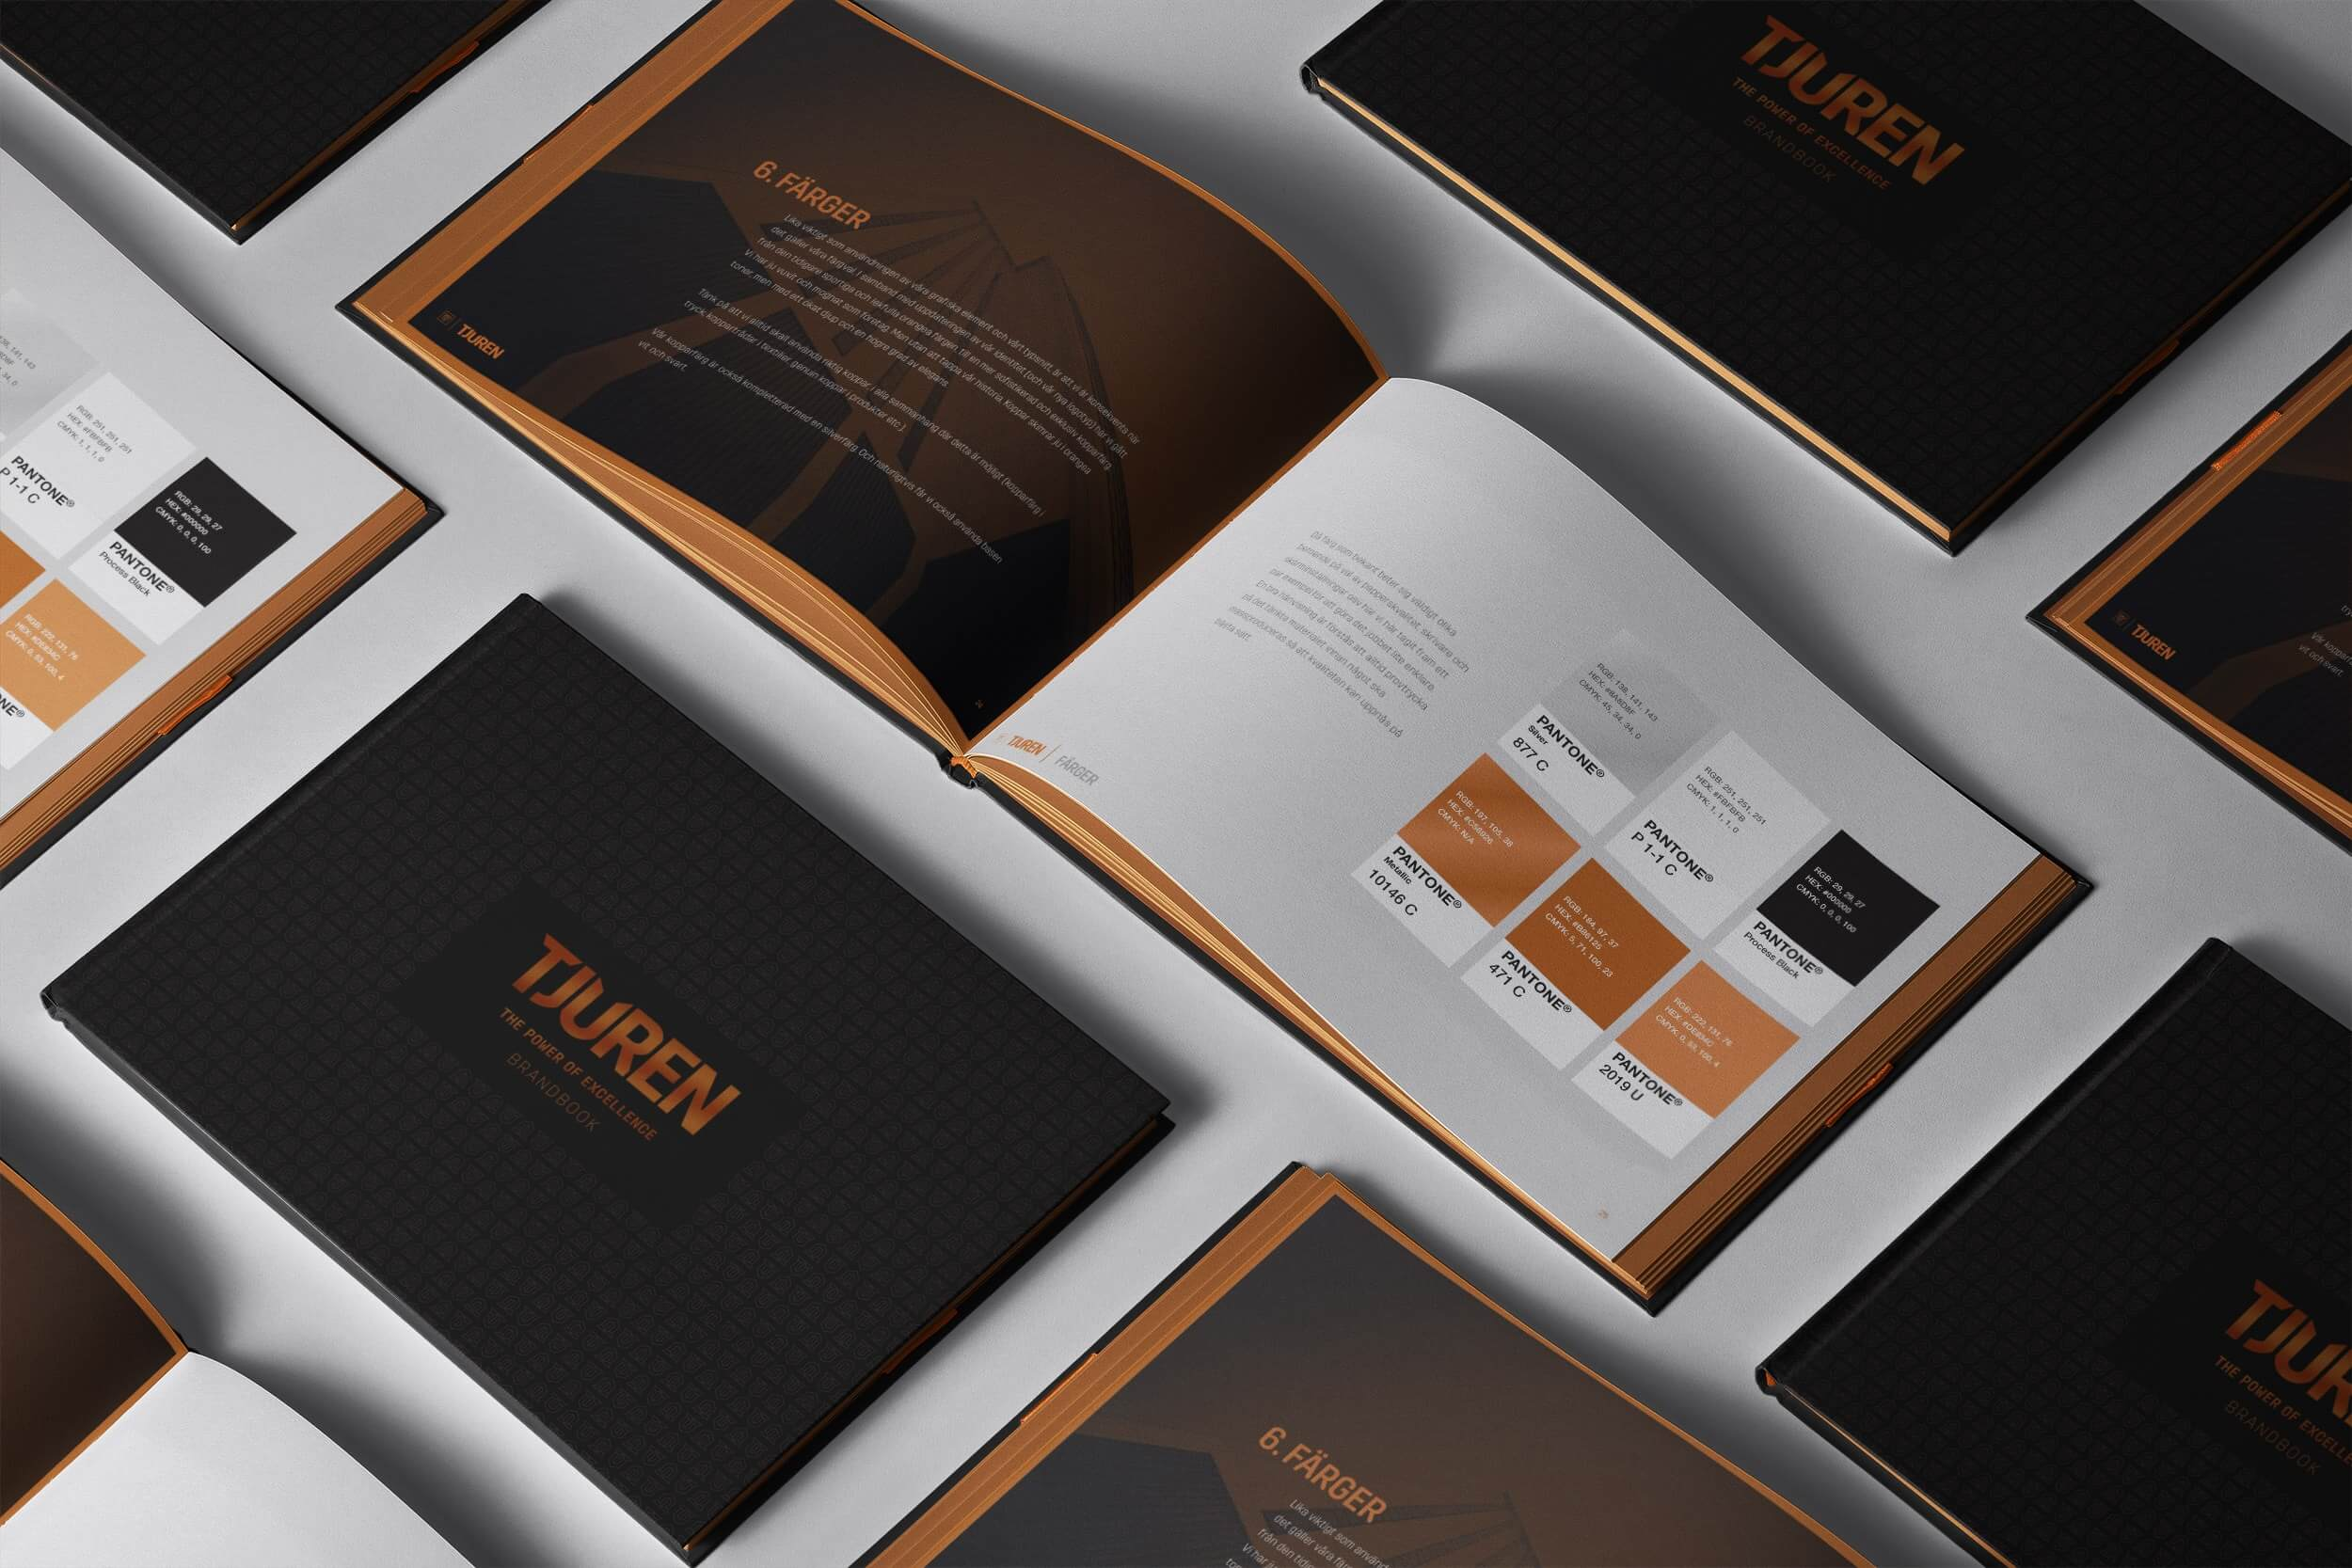 open book showing pages of the brand guidelines for tjuren.